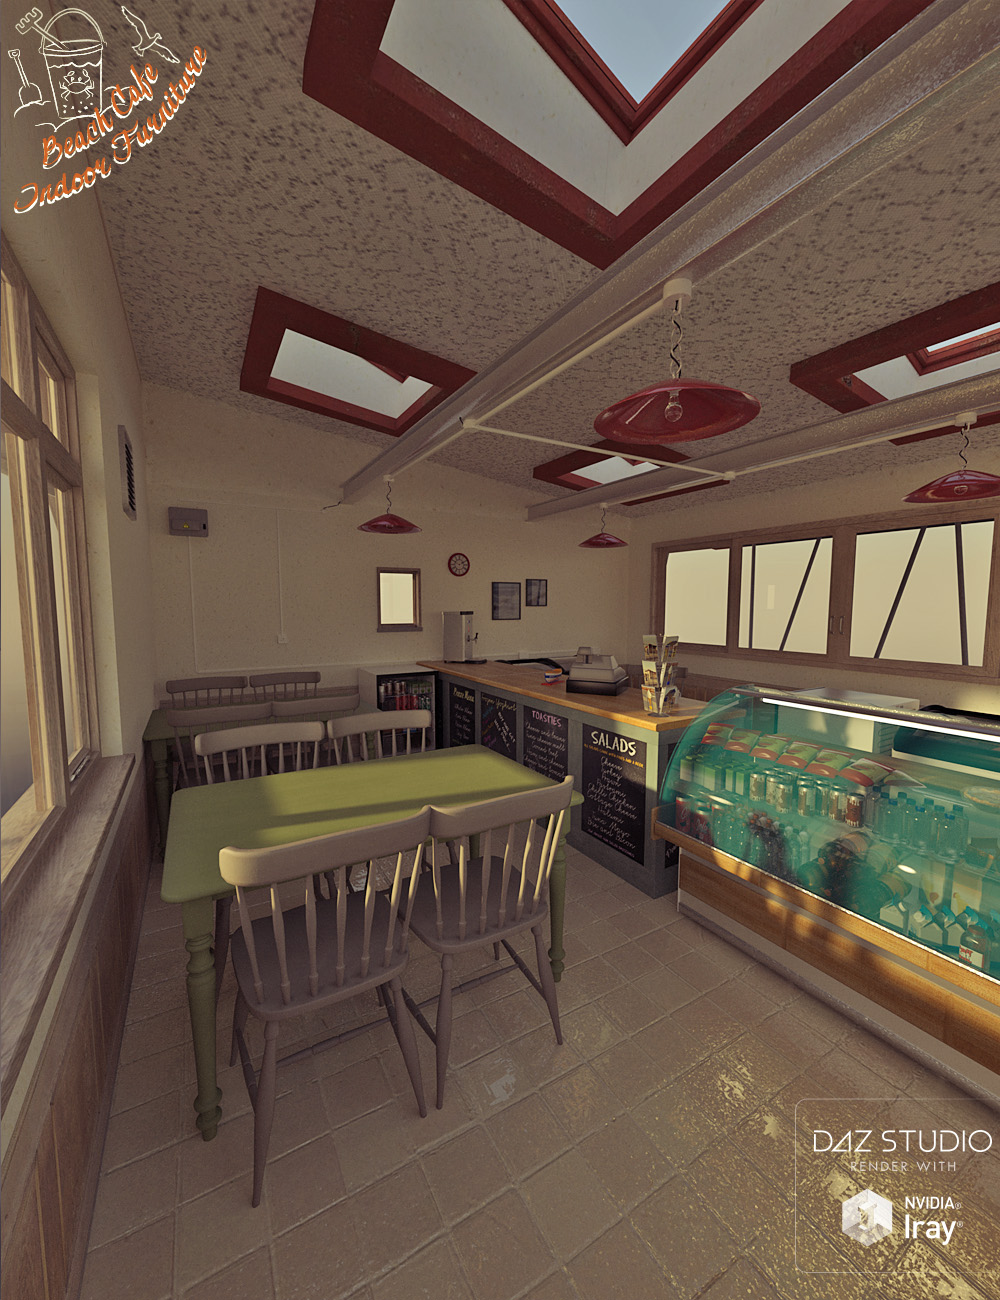 Beach Cafe Interior Furniture by: David BrinnenForbiddenWhispers, 3D Models by Daz 3D